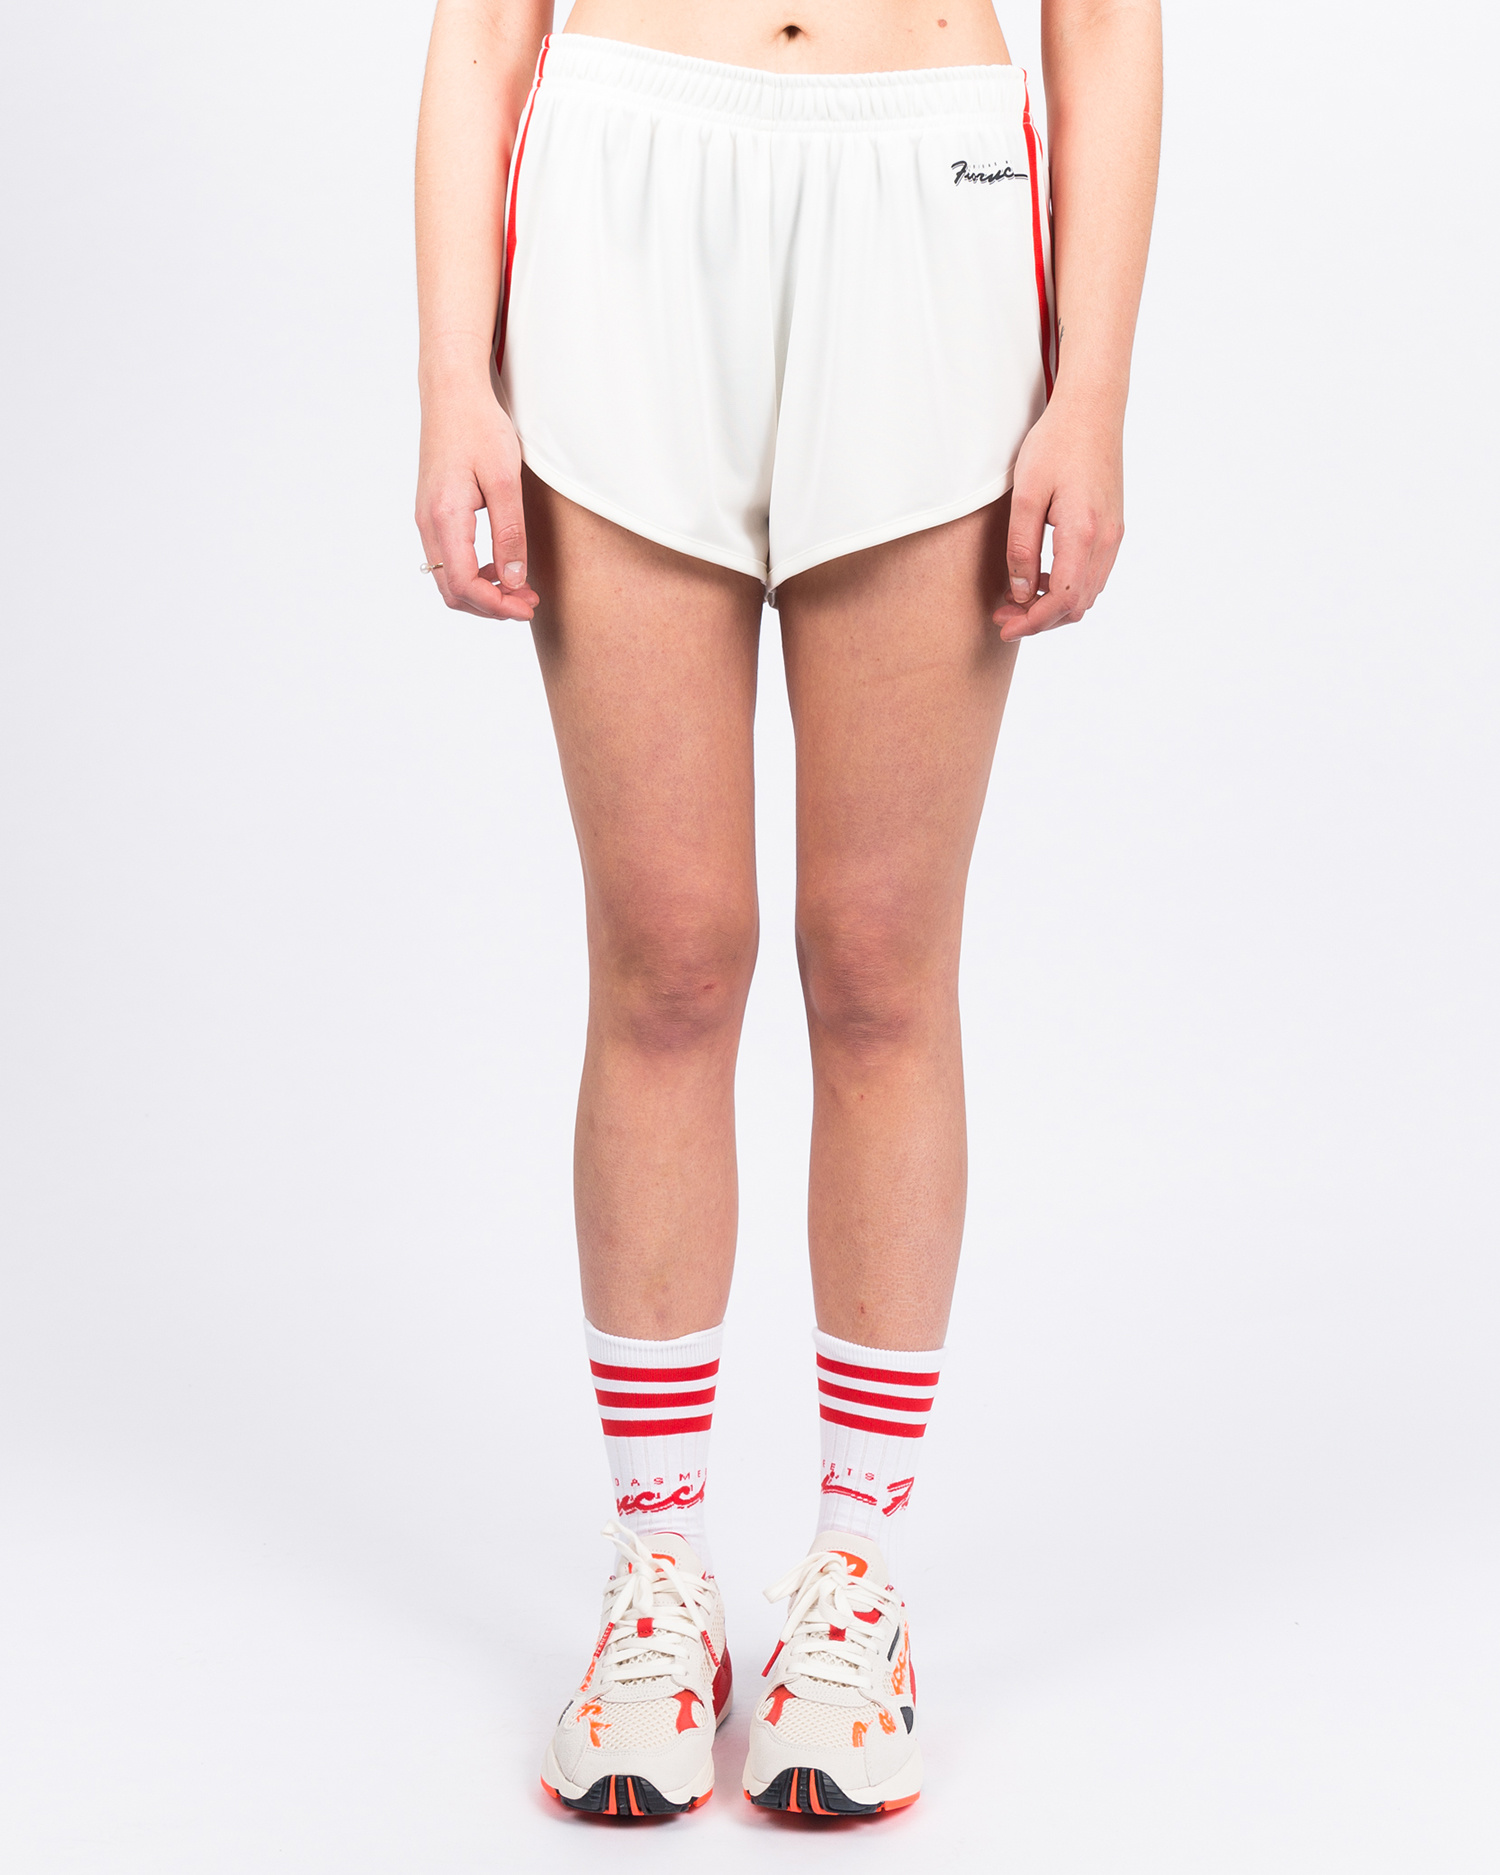 adidas x Fiorucci Vintage Short Off-White/Red/Black